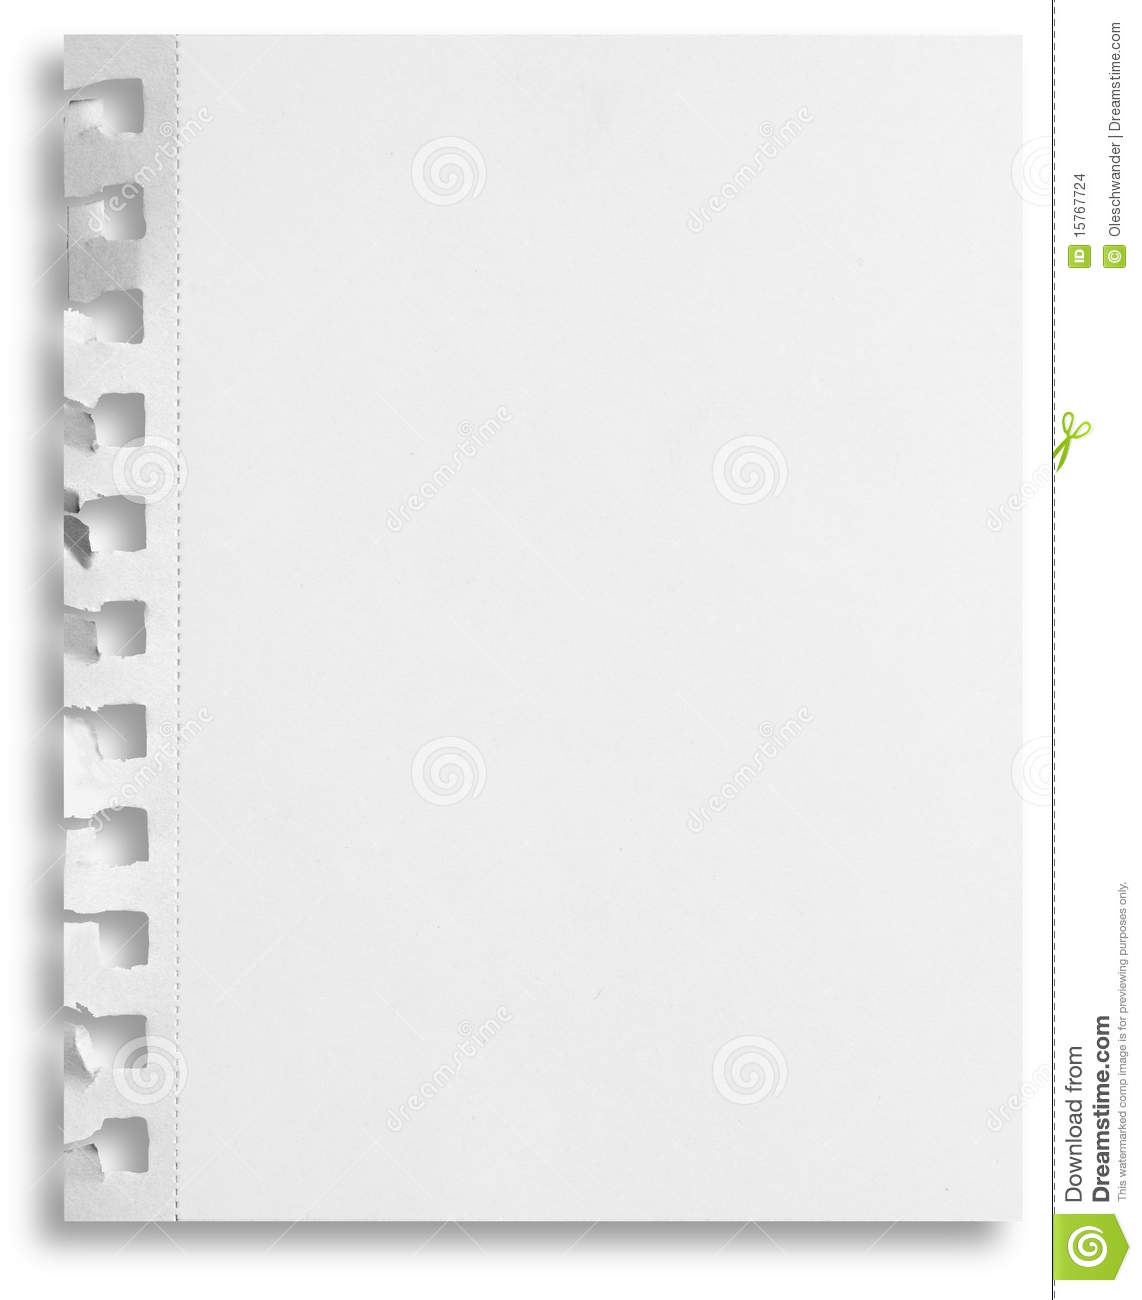 Blank paper isolated with holes and shadow